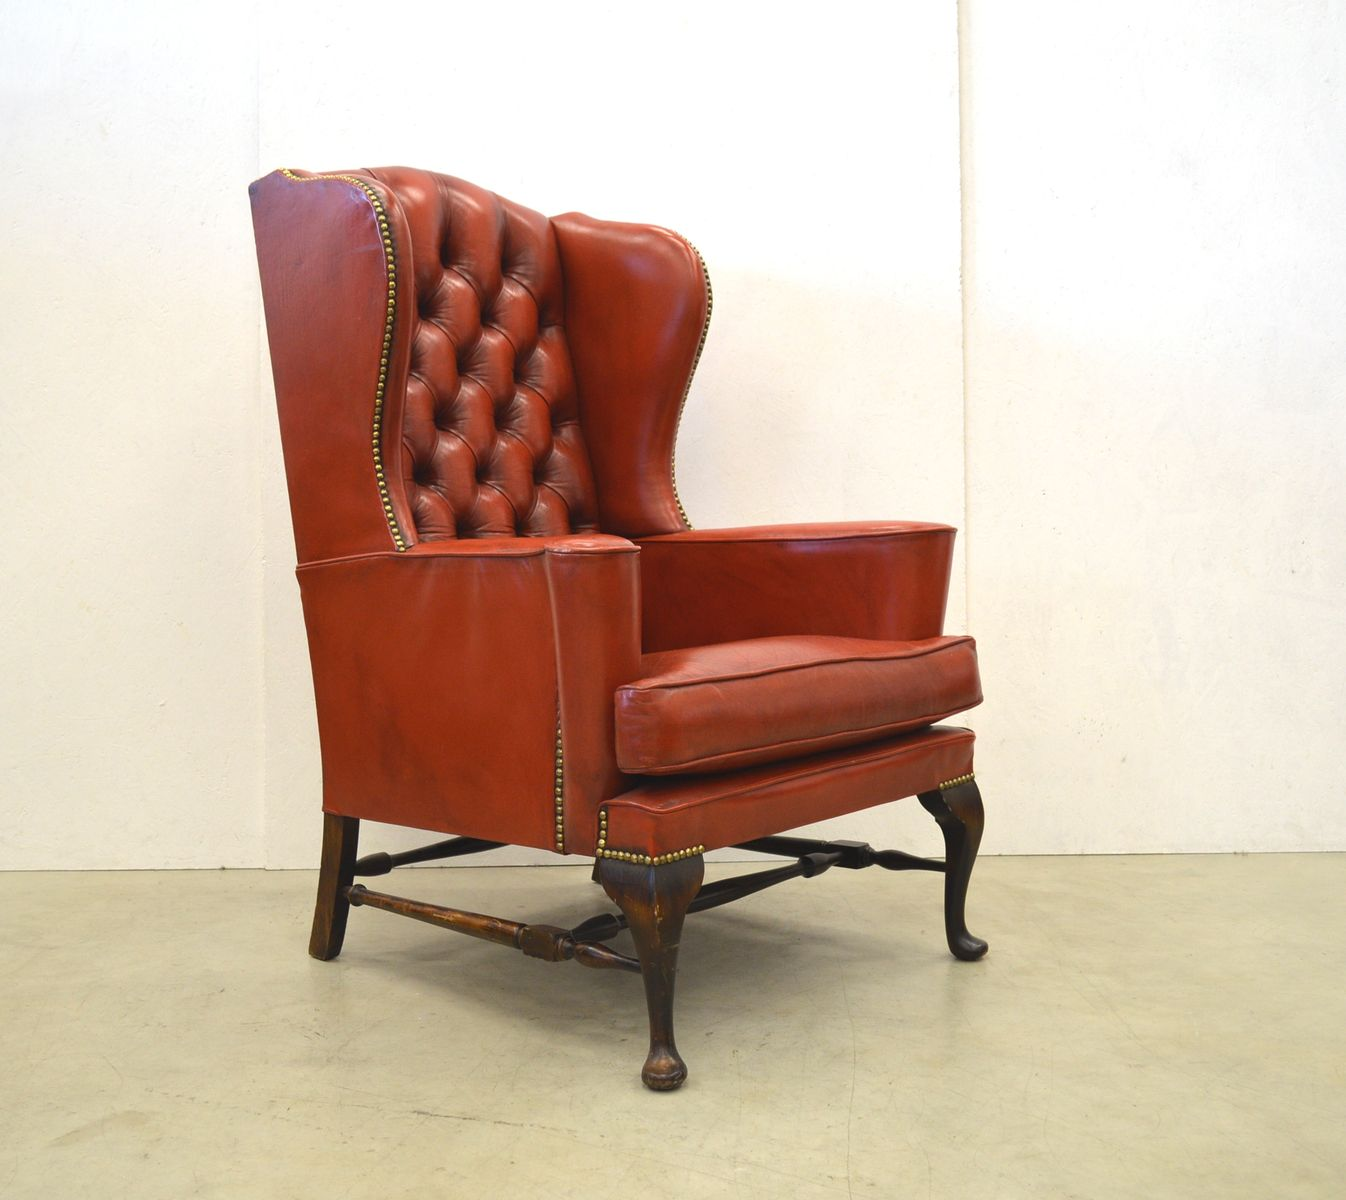 1960s Missoni Wingback Chair At 1stdibs: Vintage English Chesterfield Wingback Chair & Ottoman